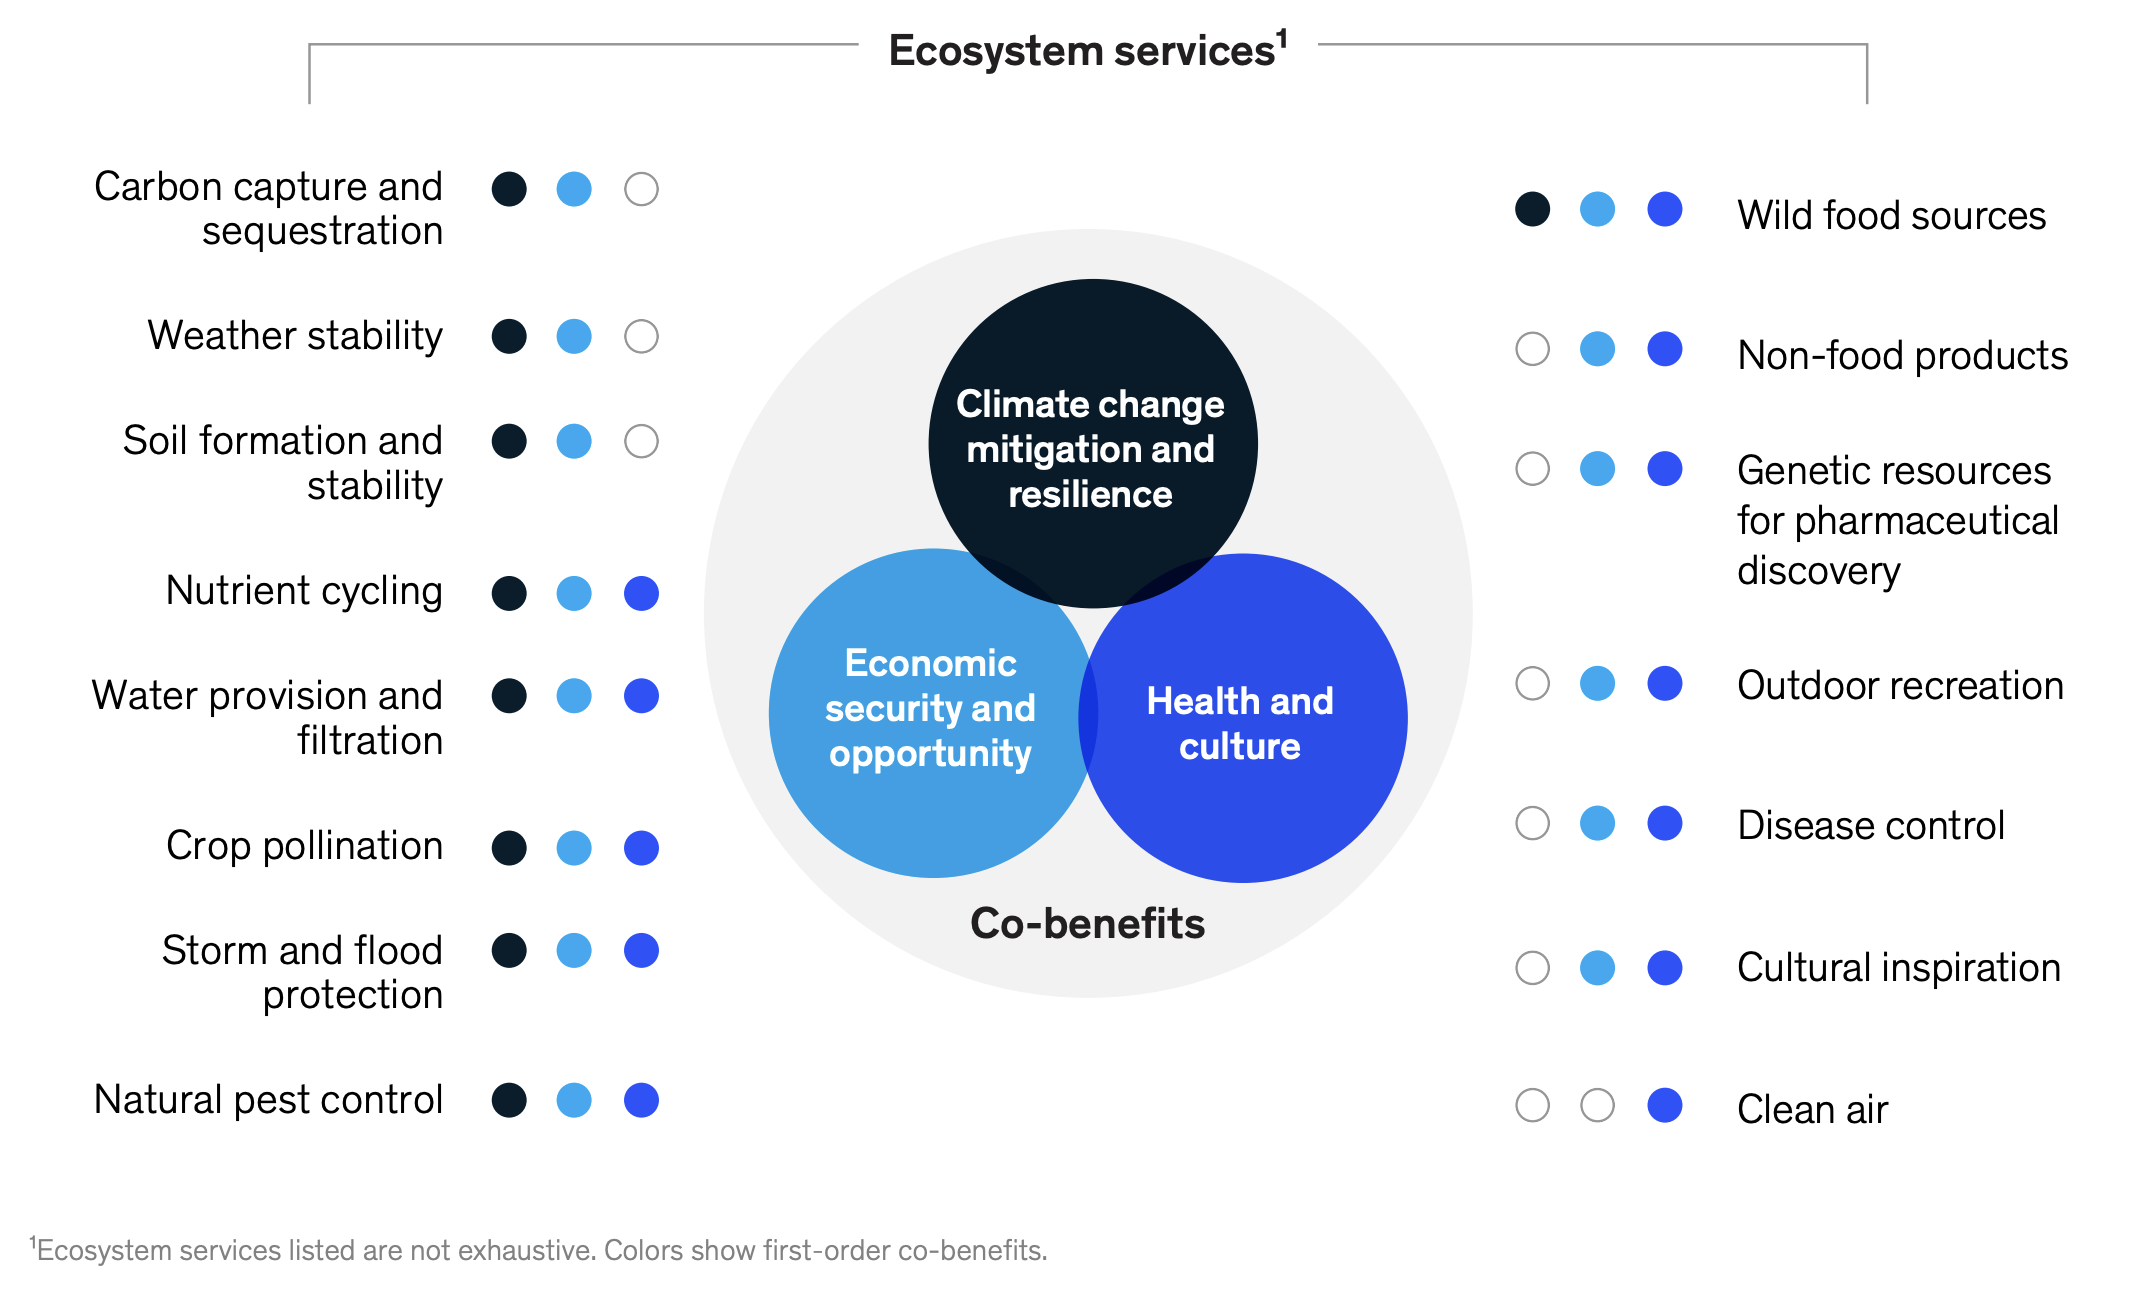 The ecosystem services provided by natural capital benefit us in a host of ways